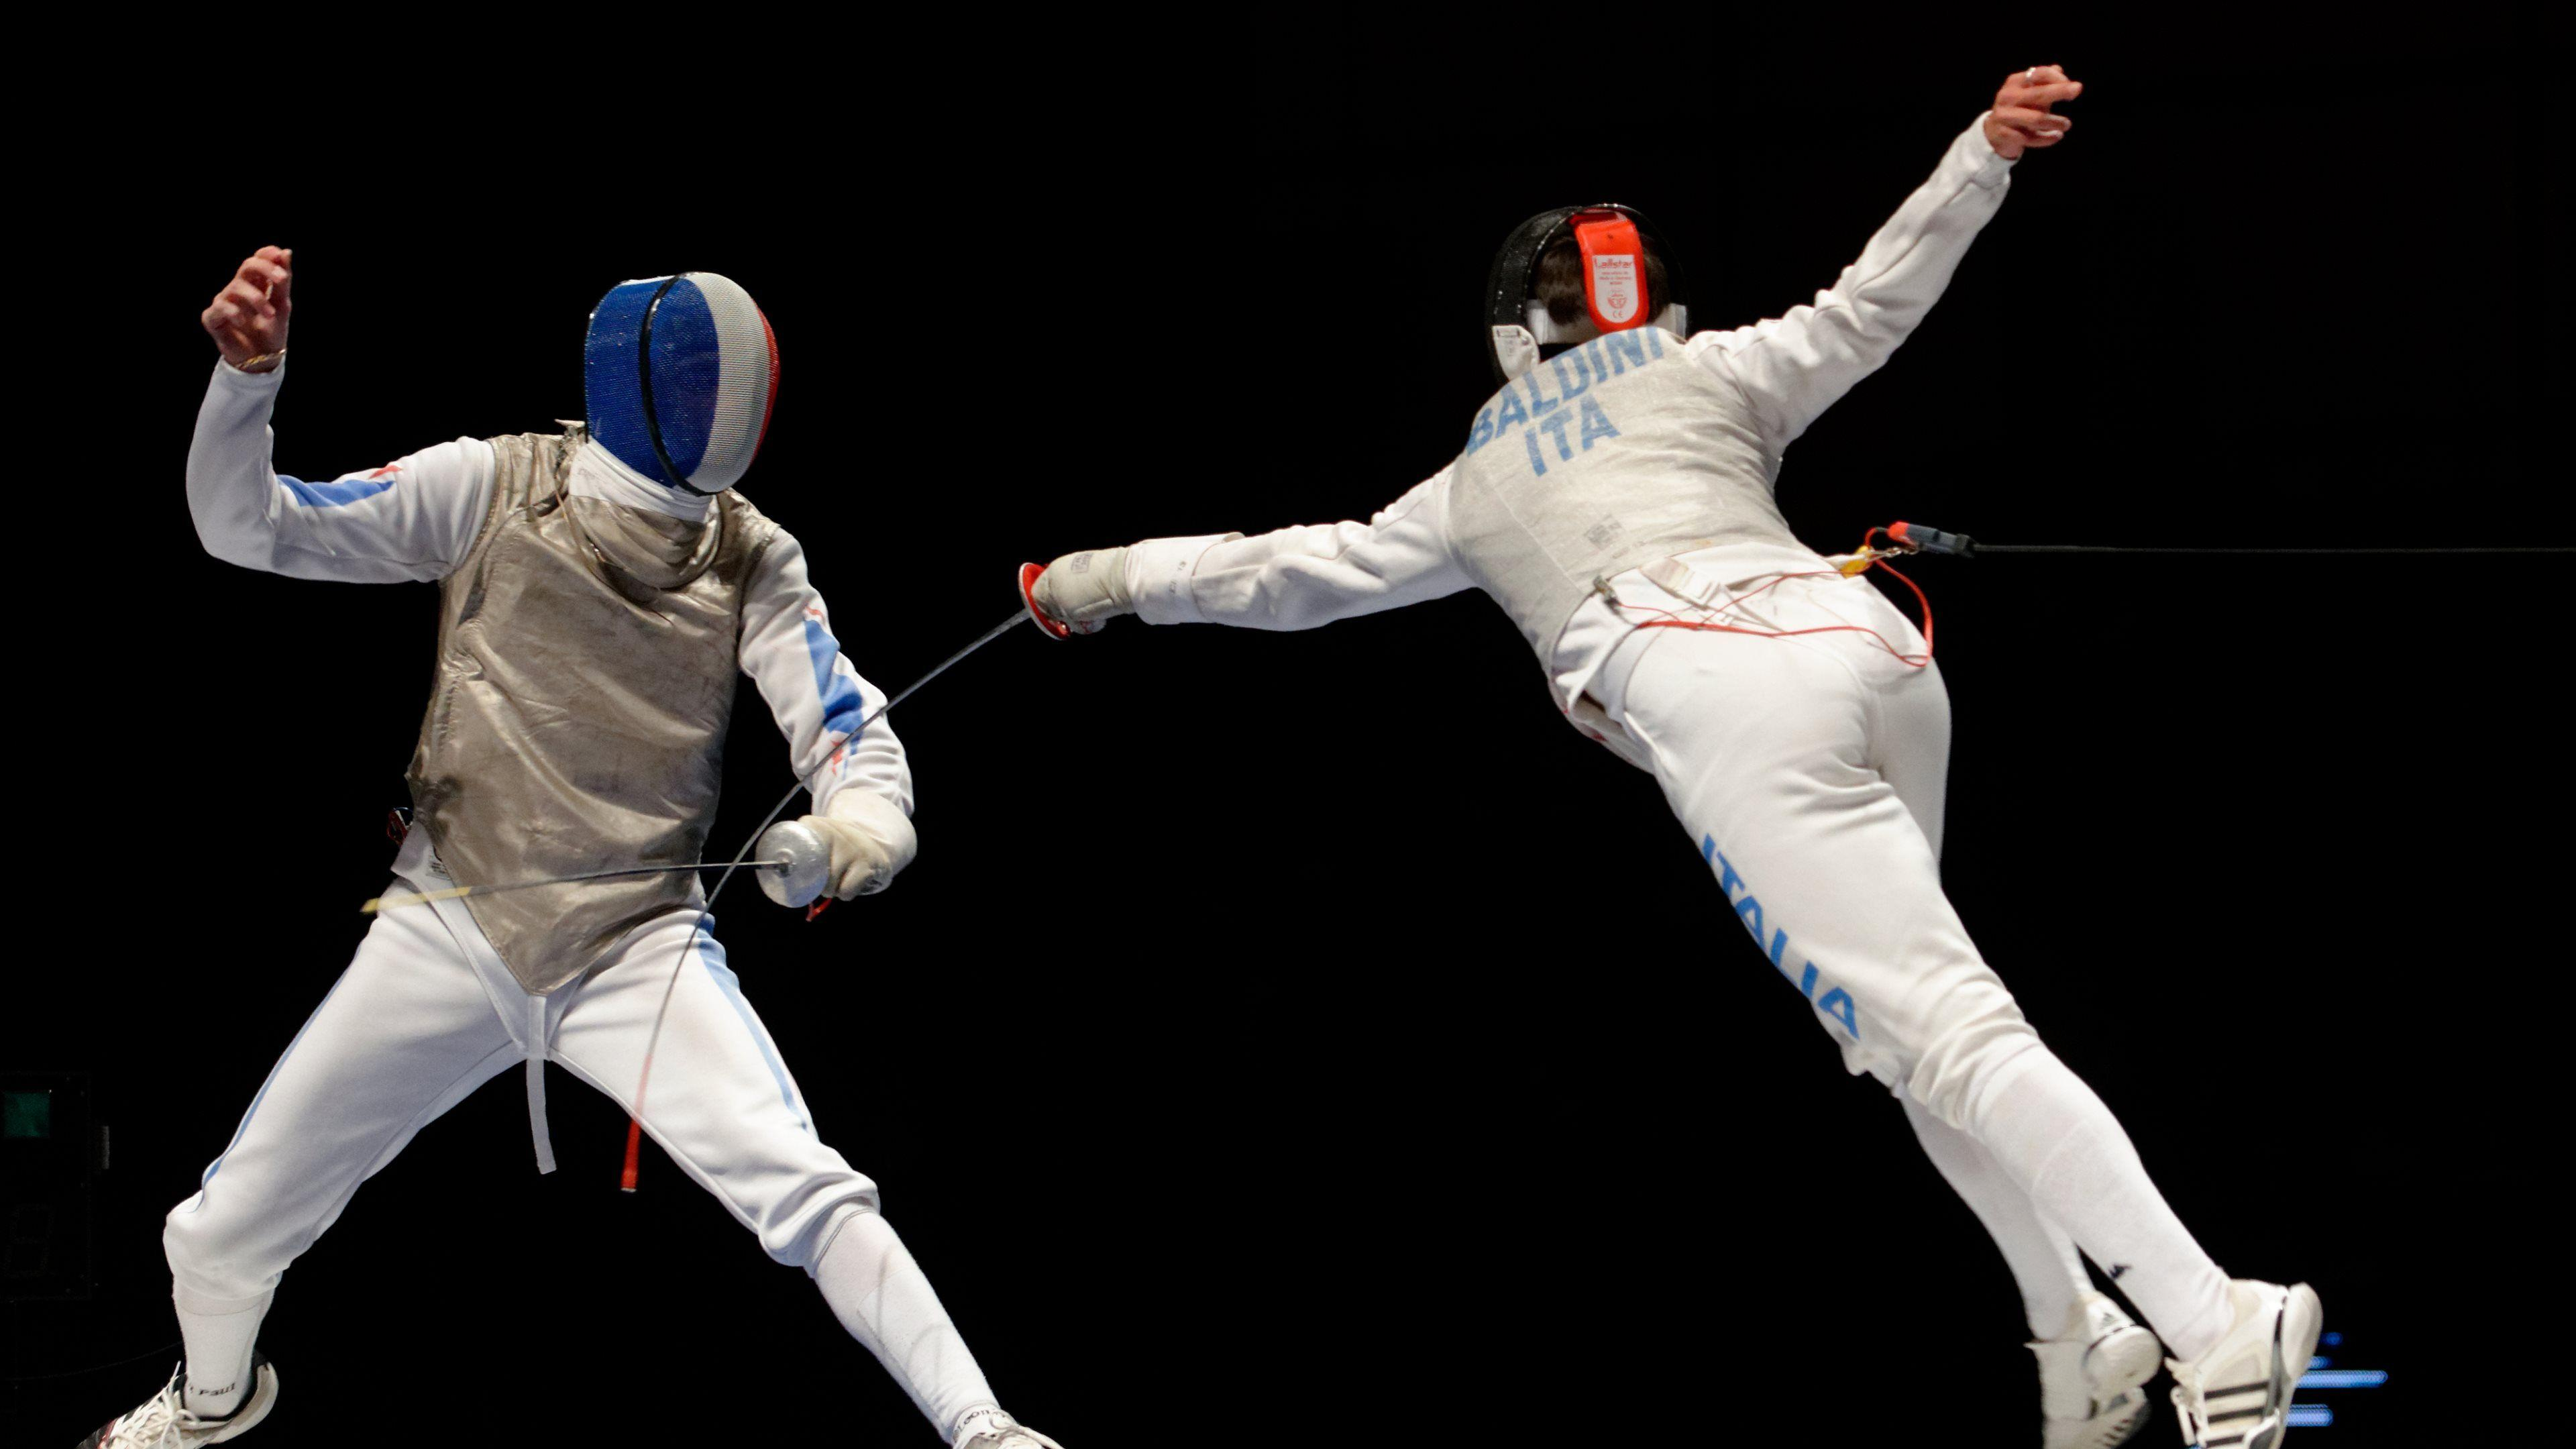 Collection of Fencing Widescreen Wallpapers: 402827624, 3840x2160 ...